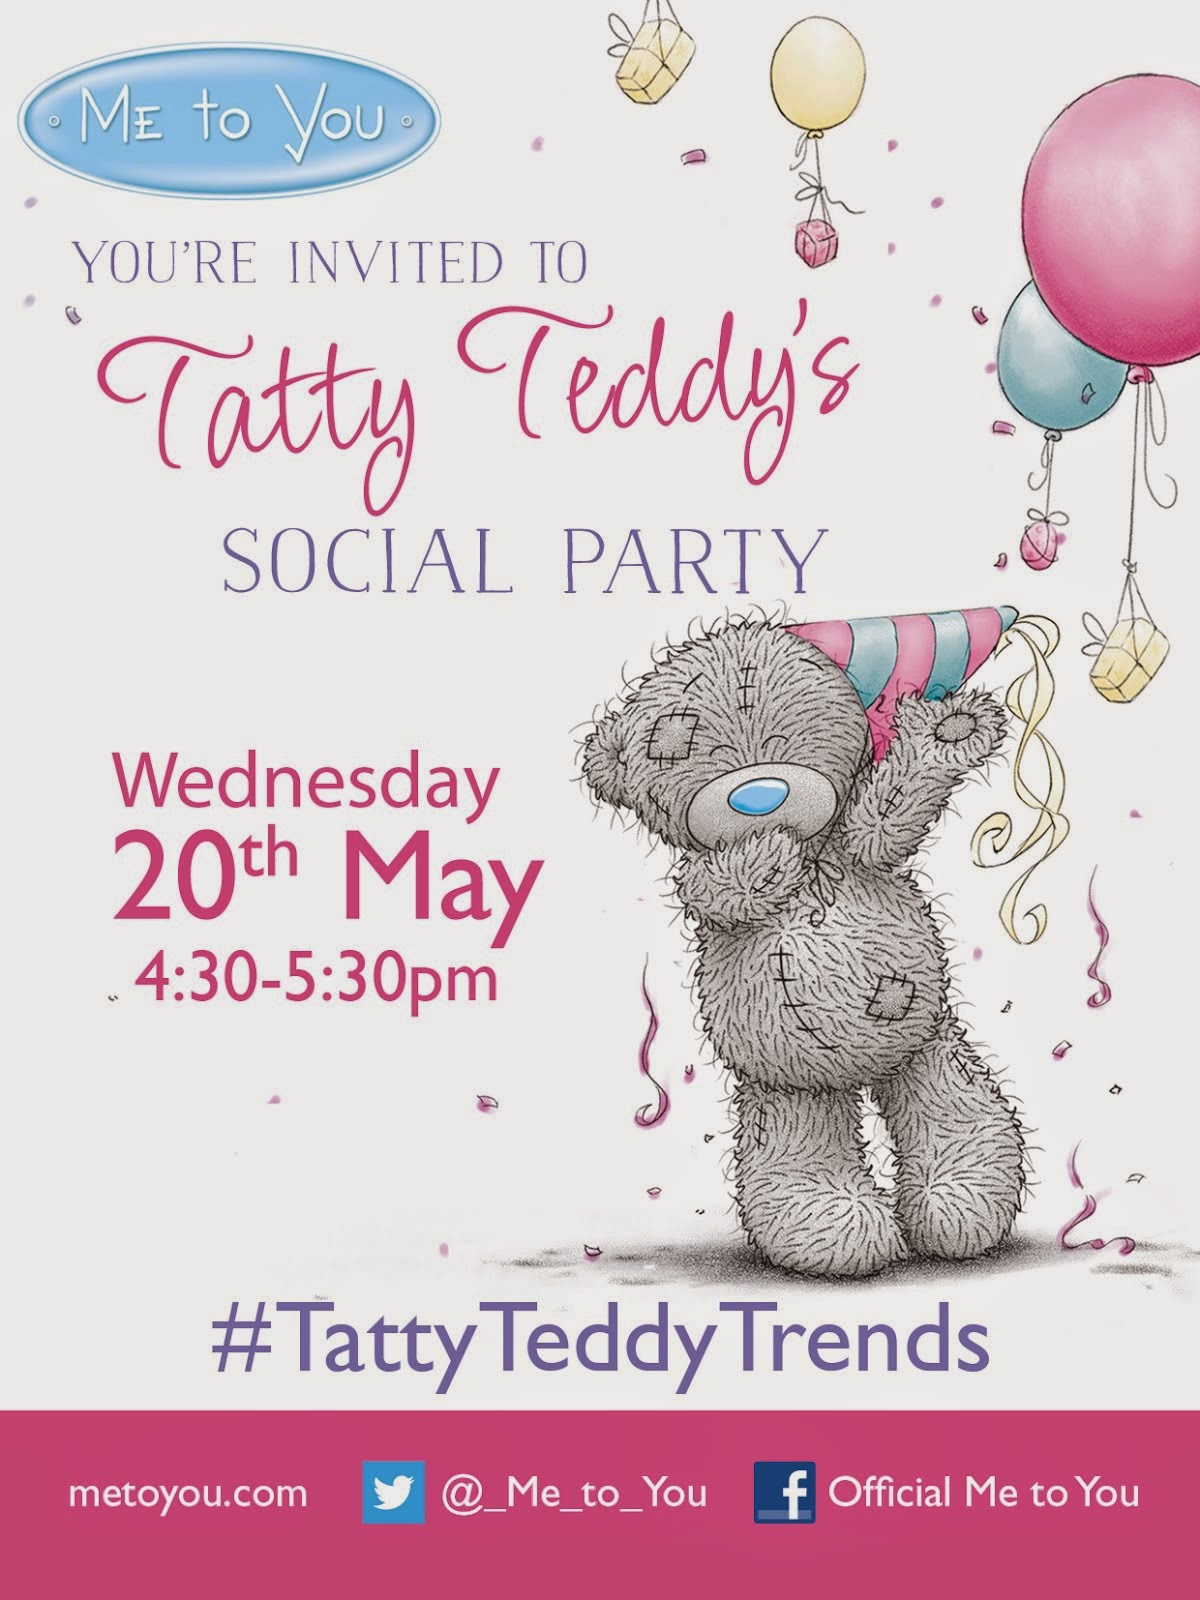 I'm A Tatty Teddy's Twitter Party Host